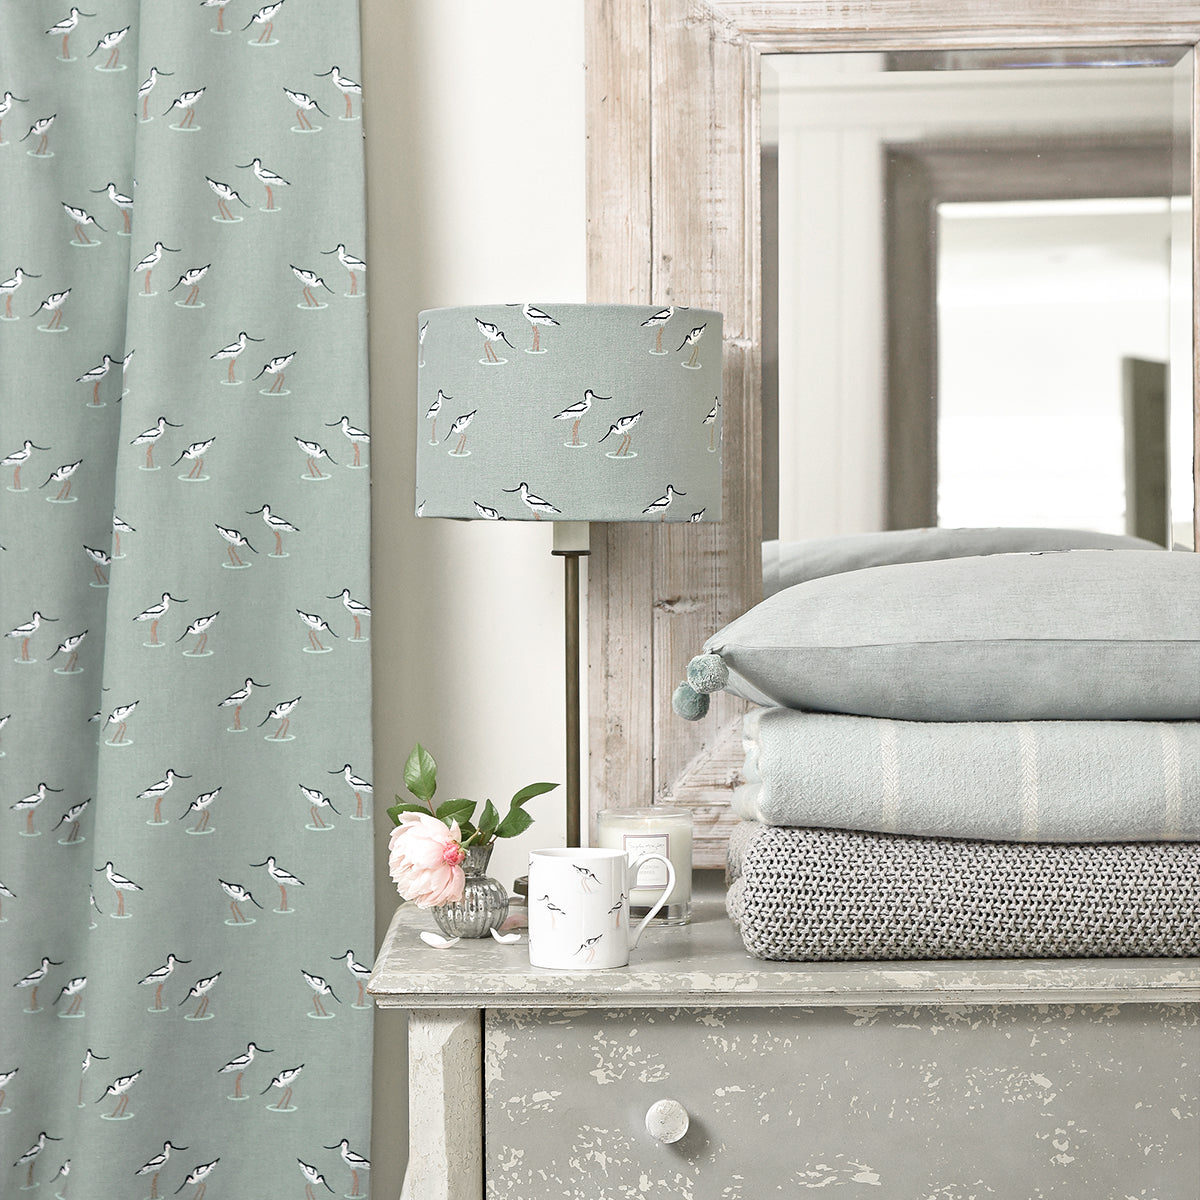 Sophie Allport Coastal Birds Fabric by the Metre